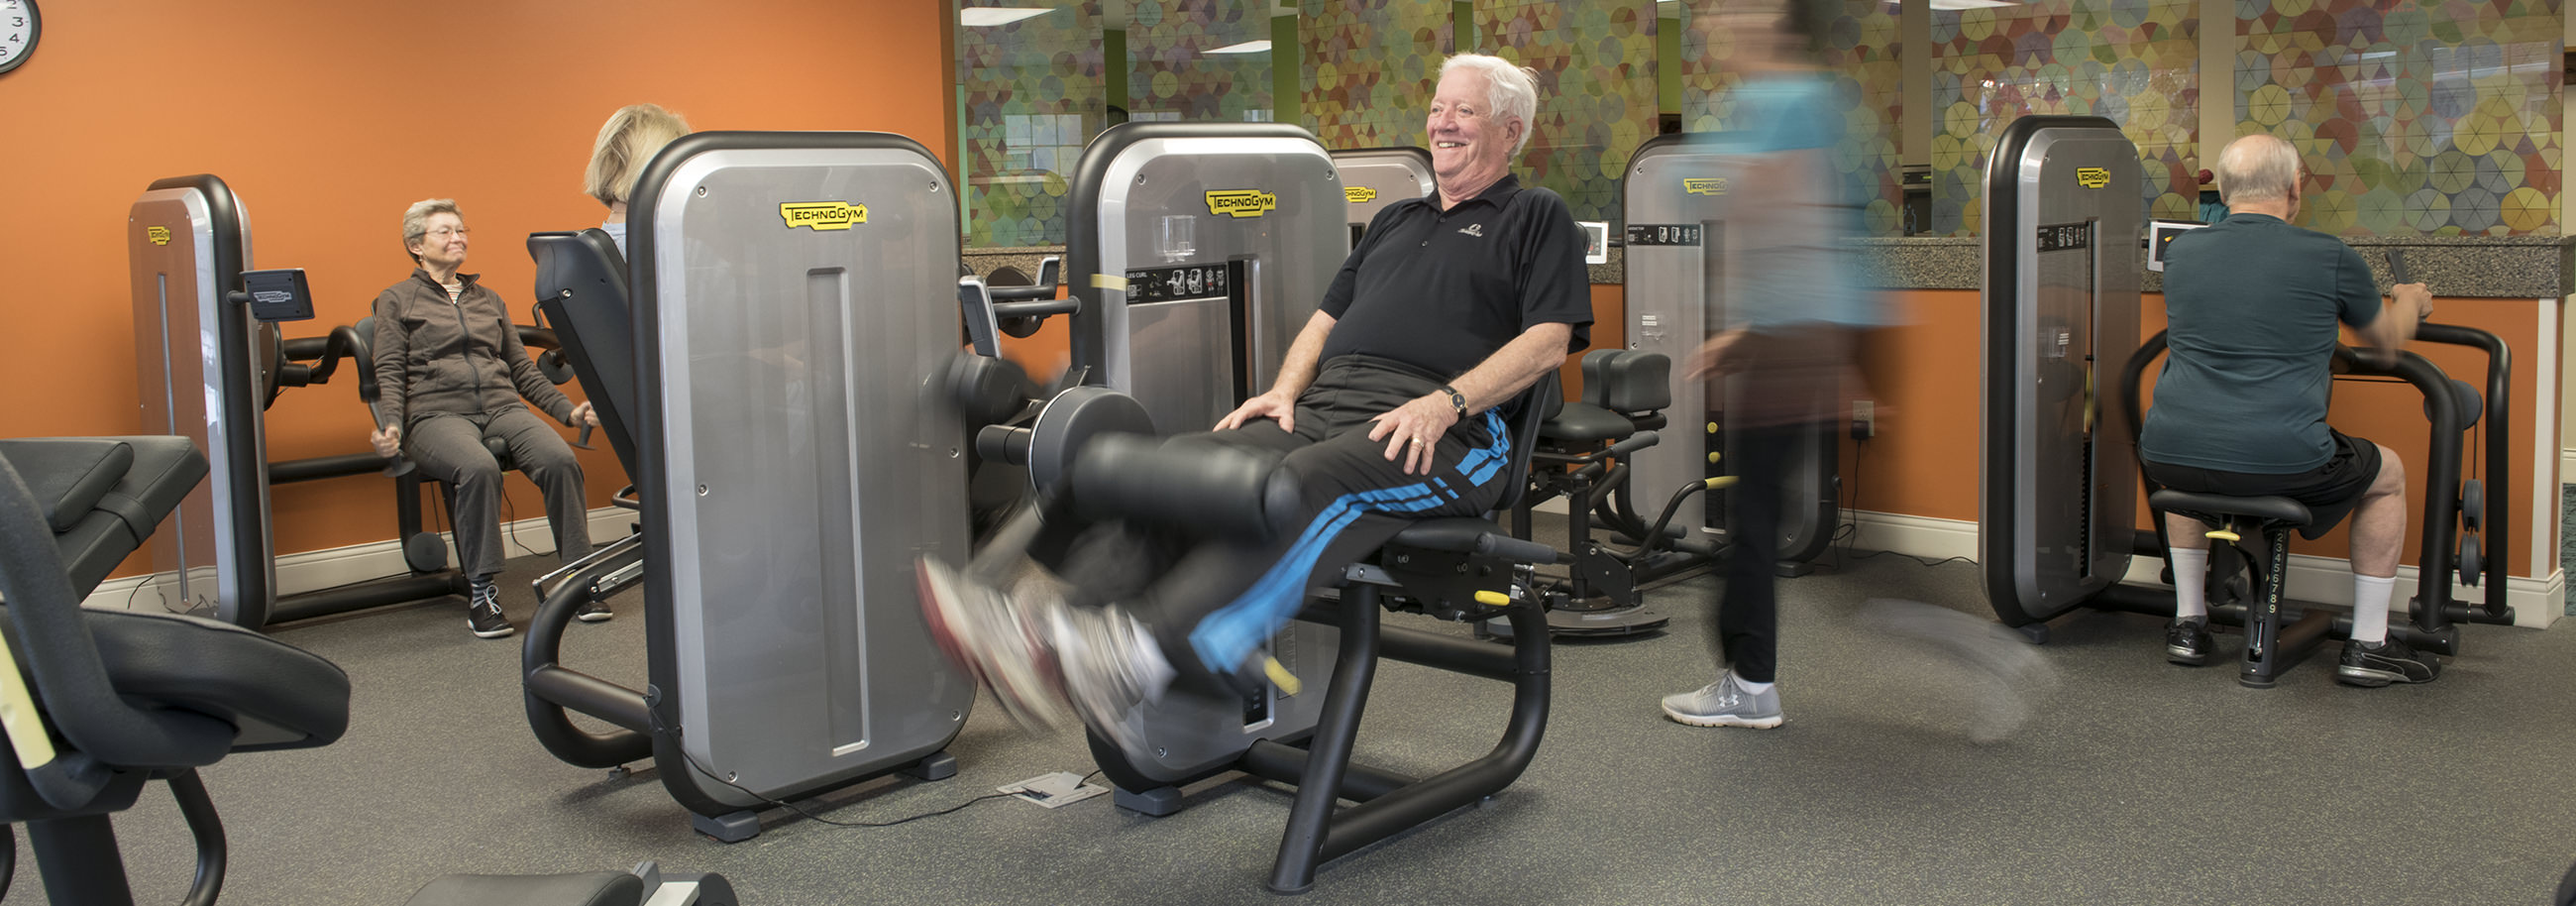 Residents at Garden Spot Village enjoy exercising and staying active in our newly renovated wellness department.